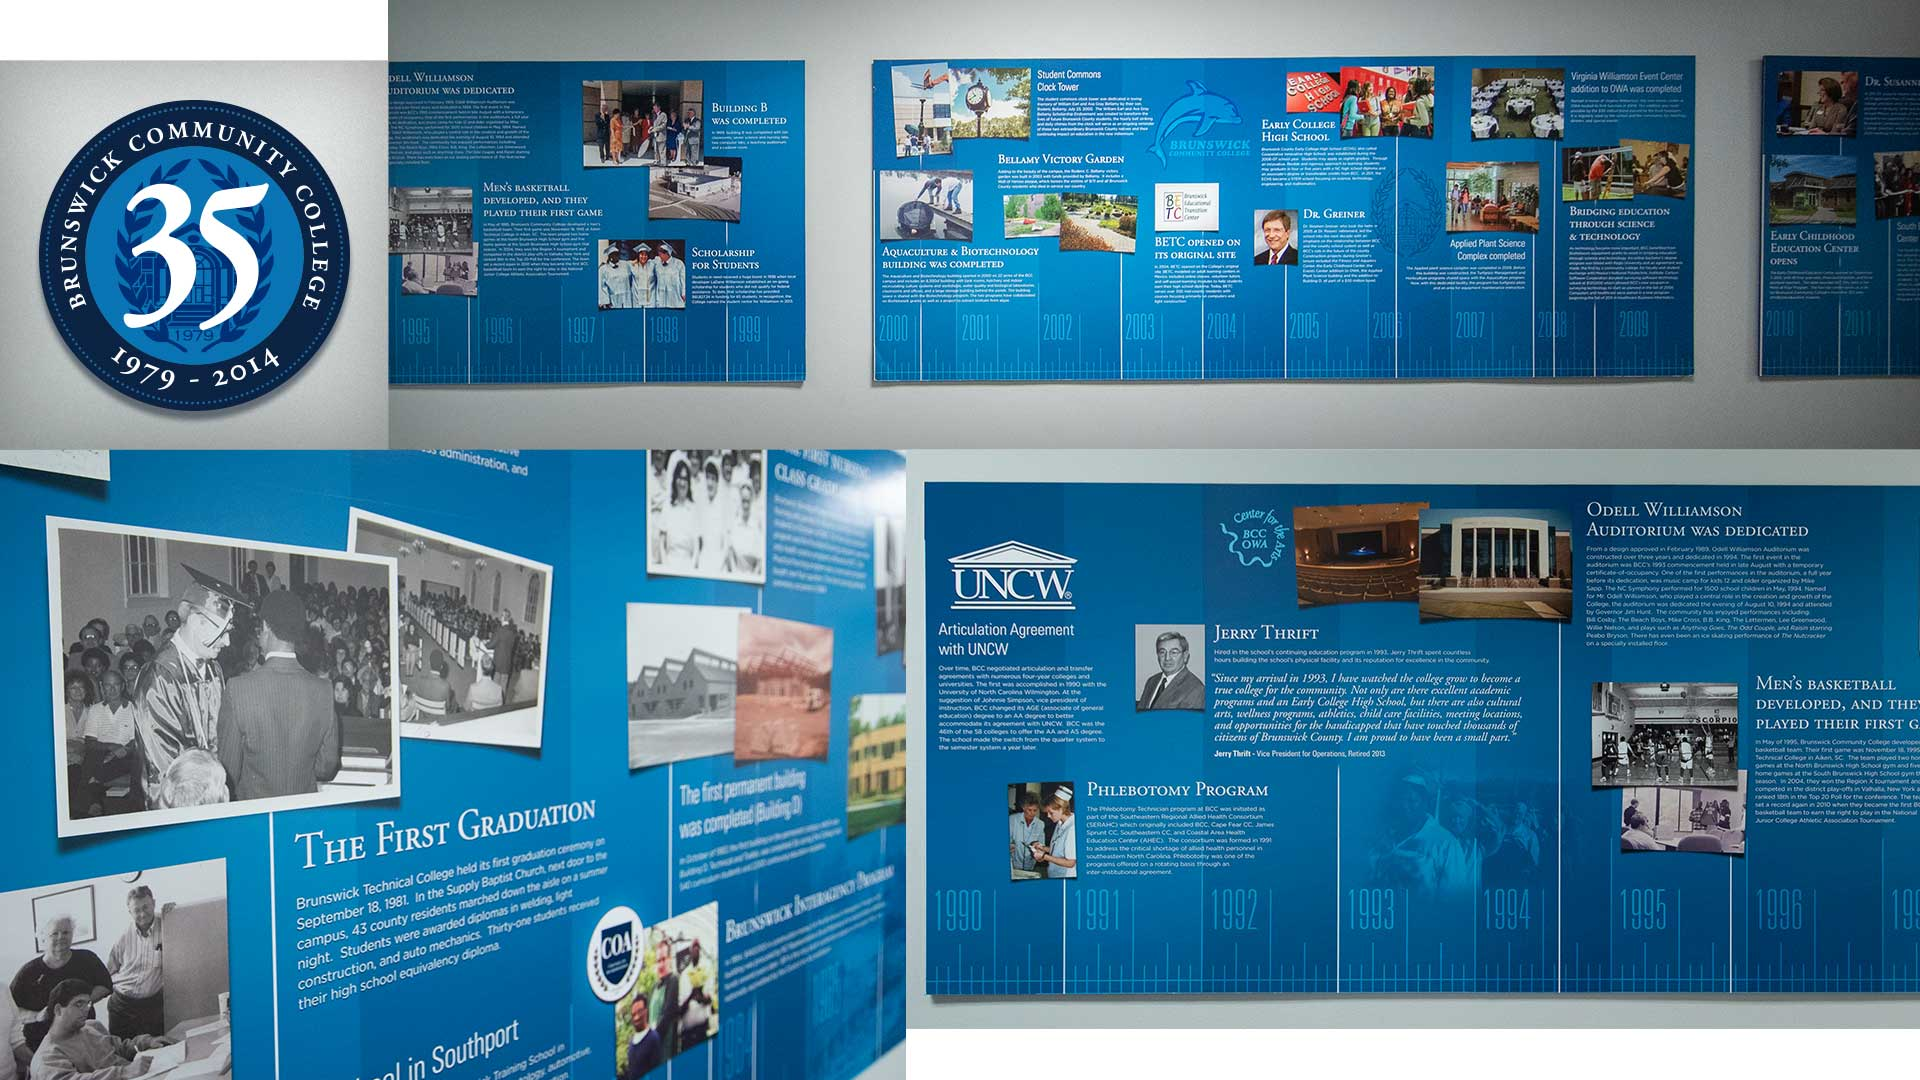 brunswick_community college timeline